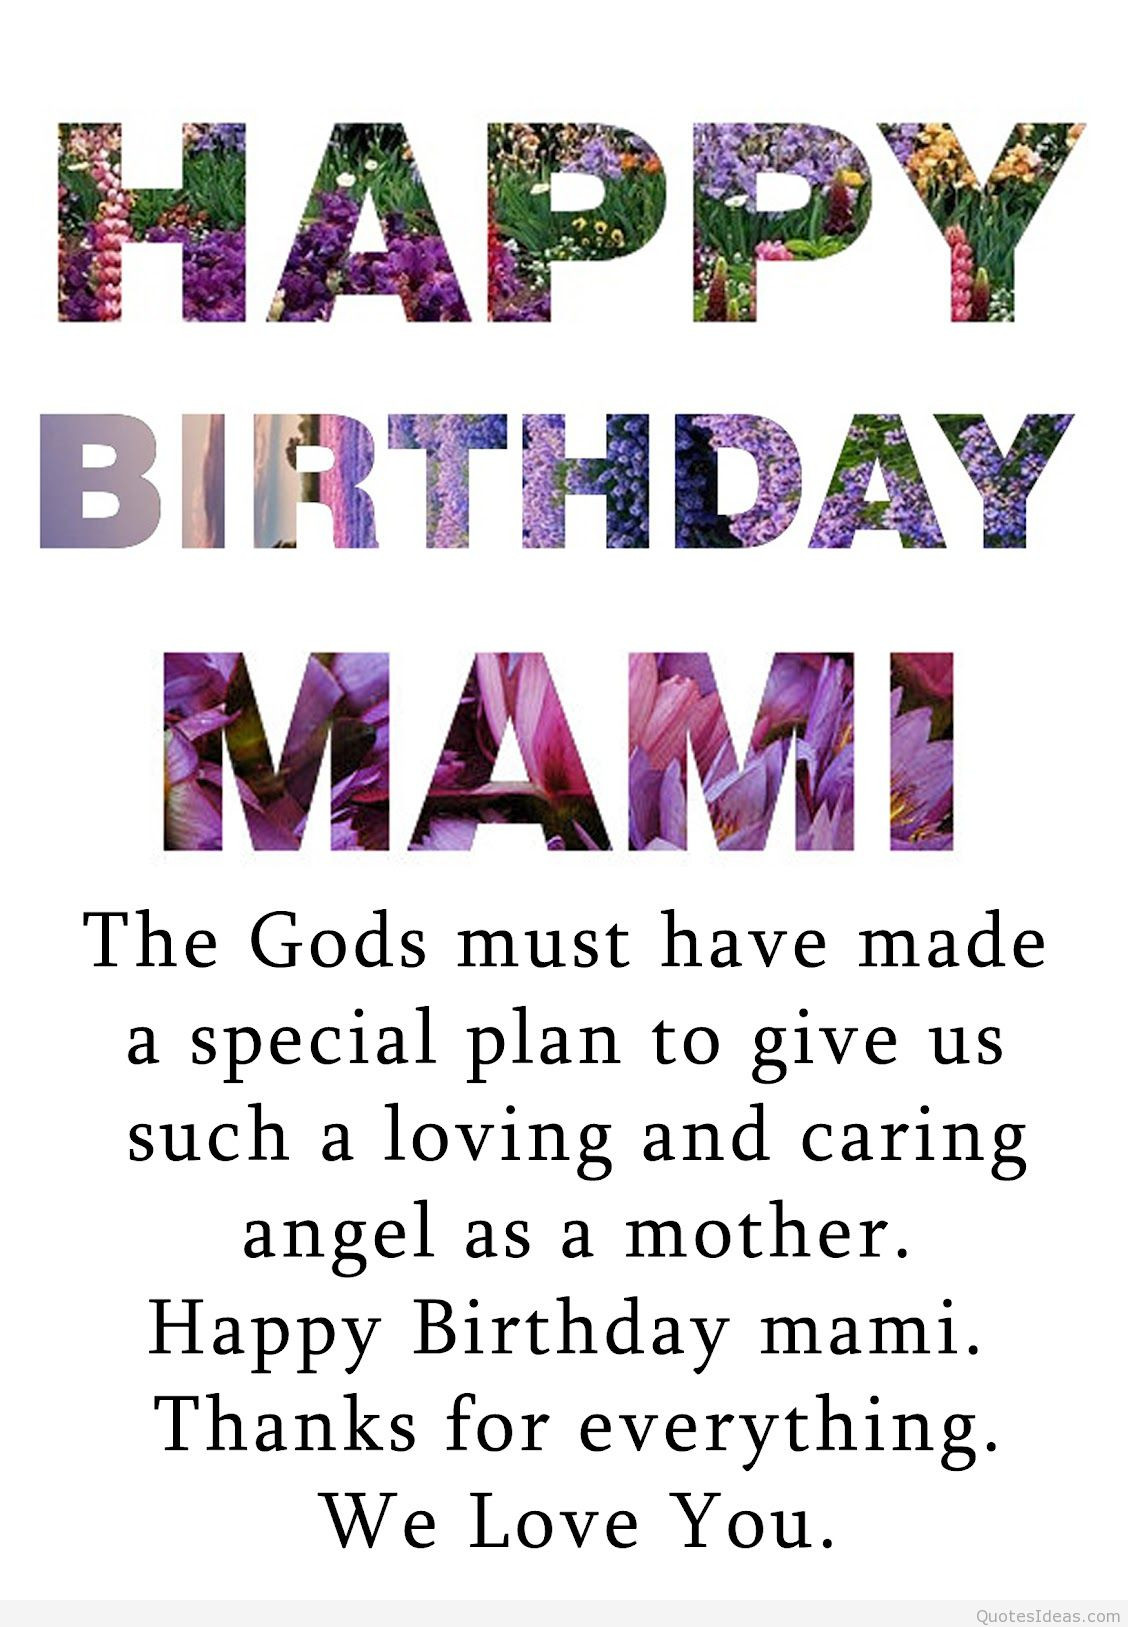 Quotes For Mothers Birthdays  Top happy birthday mom quotes